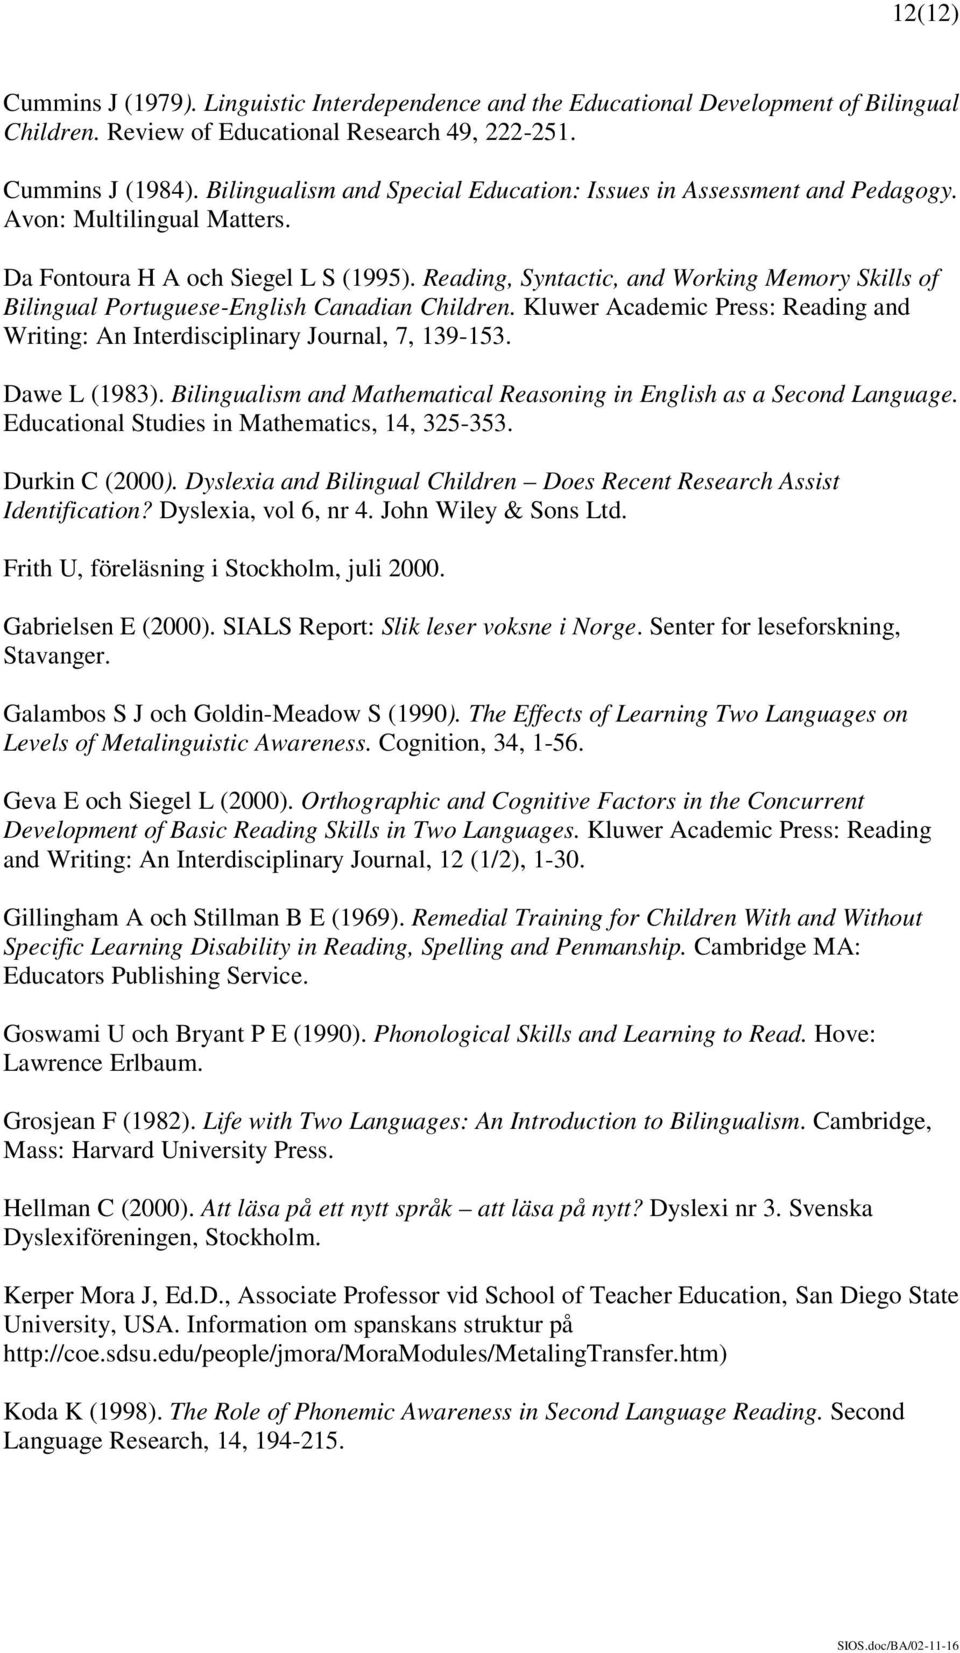 Reading, Syntactic, and Working Memory Skills of Bilingual Portuguese-English Canadian Children. Kluwer Academic Press: Reading and Writing: An Interdisciplinary Journal, 7, 139-153. Dawe L (1983).